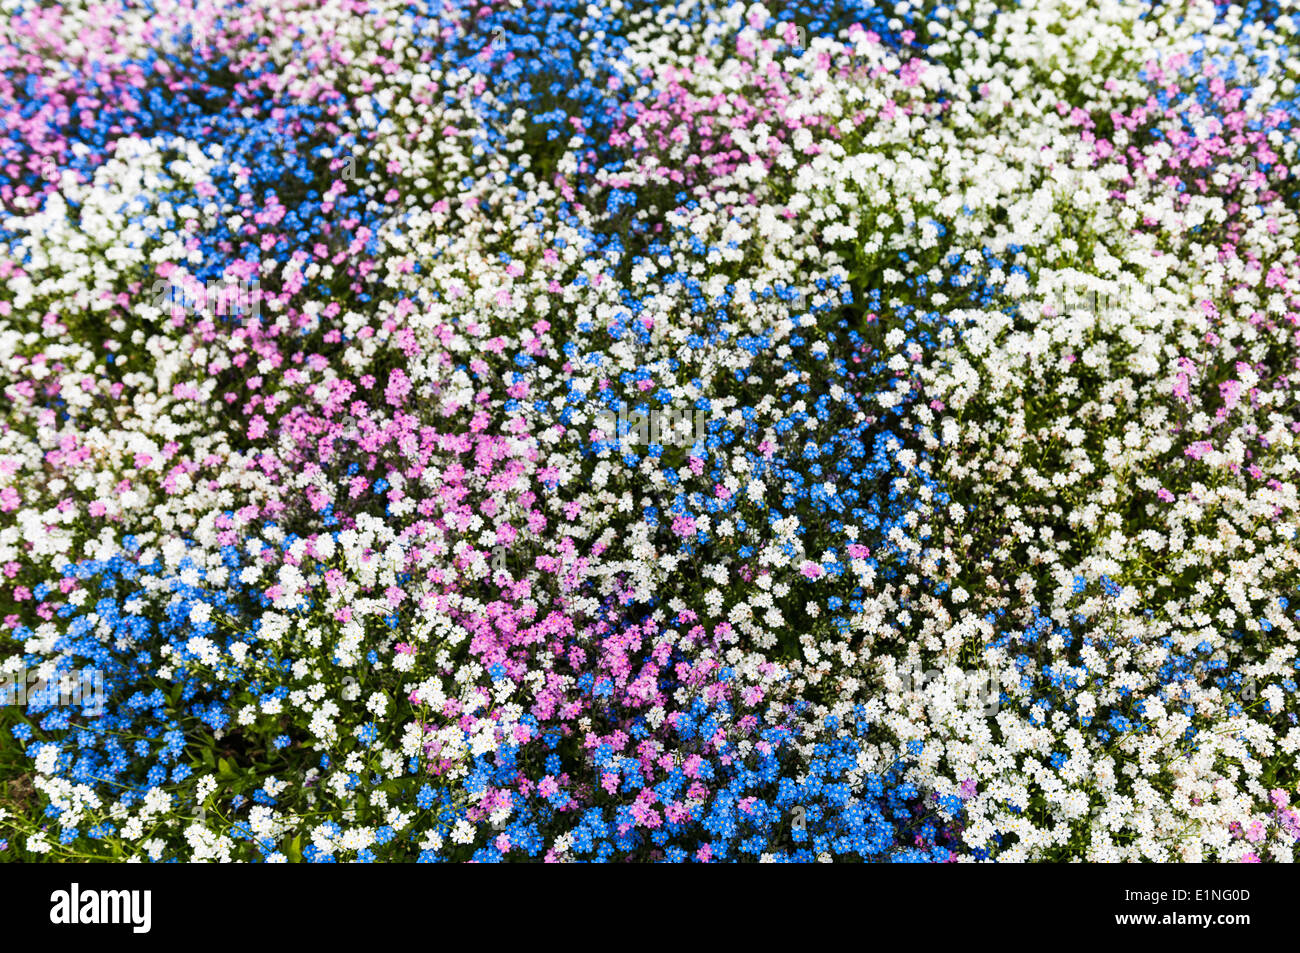 White Pink And Blue Forget Me Not Flowers In A Park Flowerbed Stock